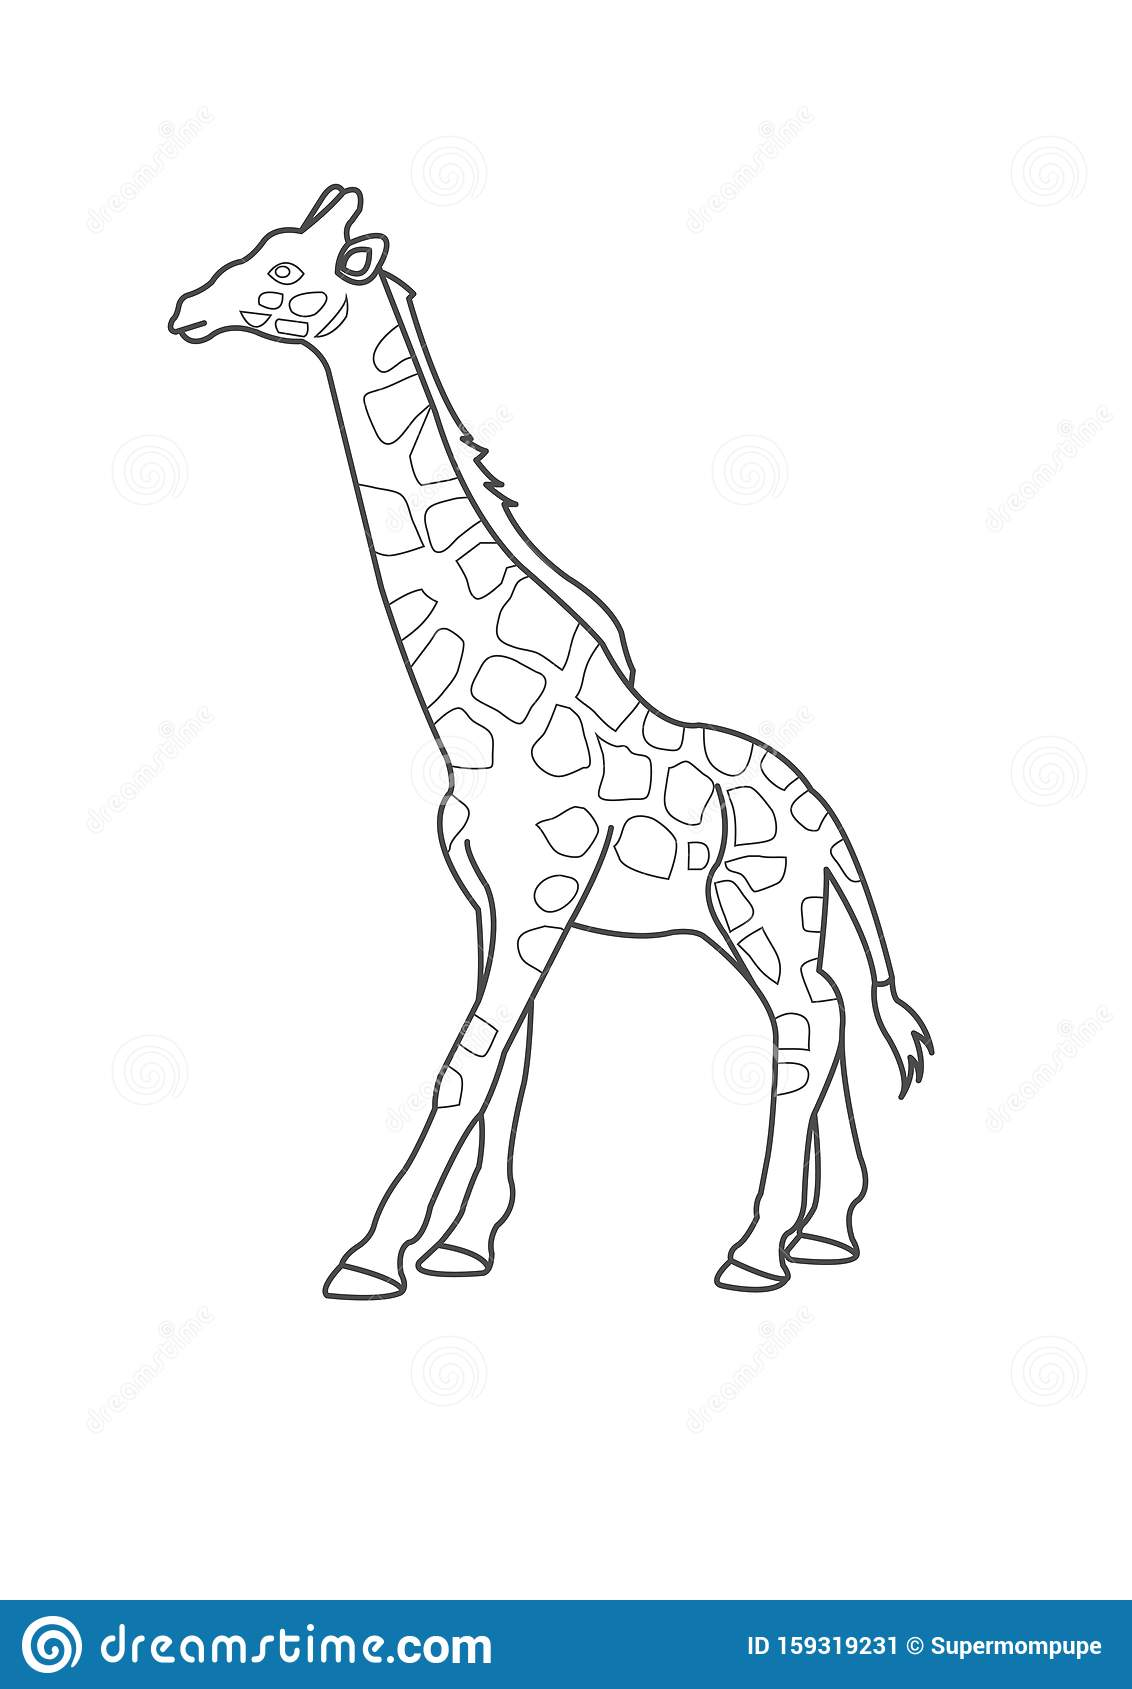 Giraffe Coloring Page For Kids Giraffe Coloring Worksheet